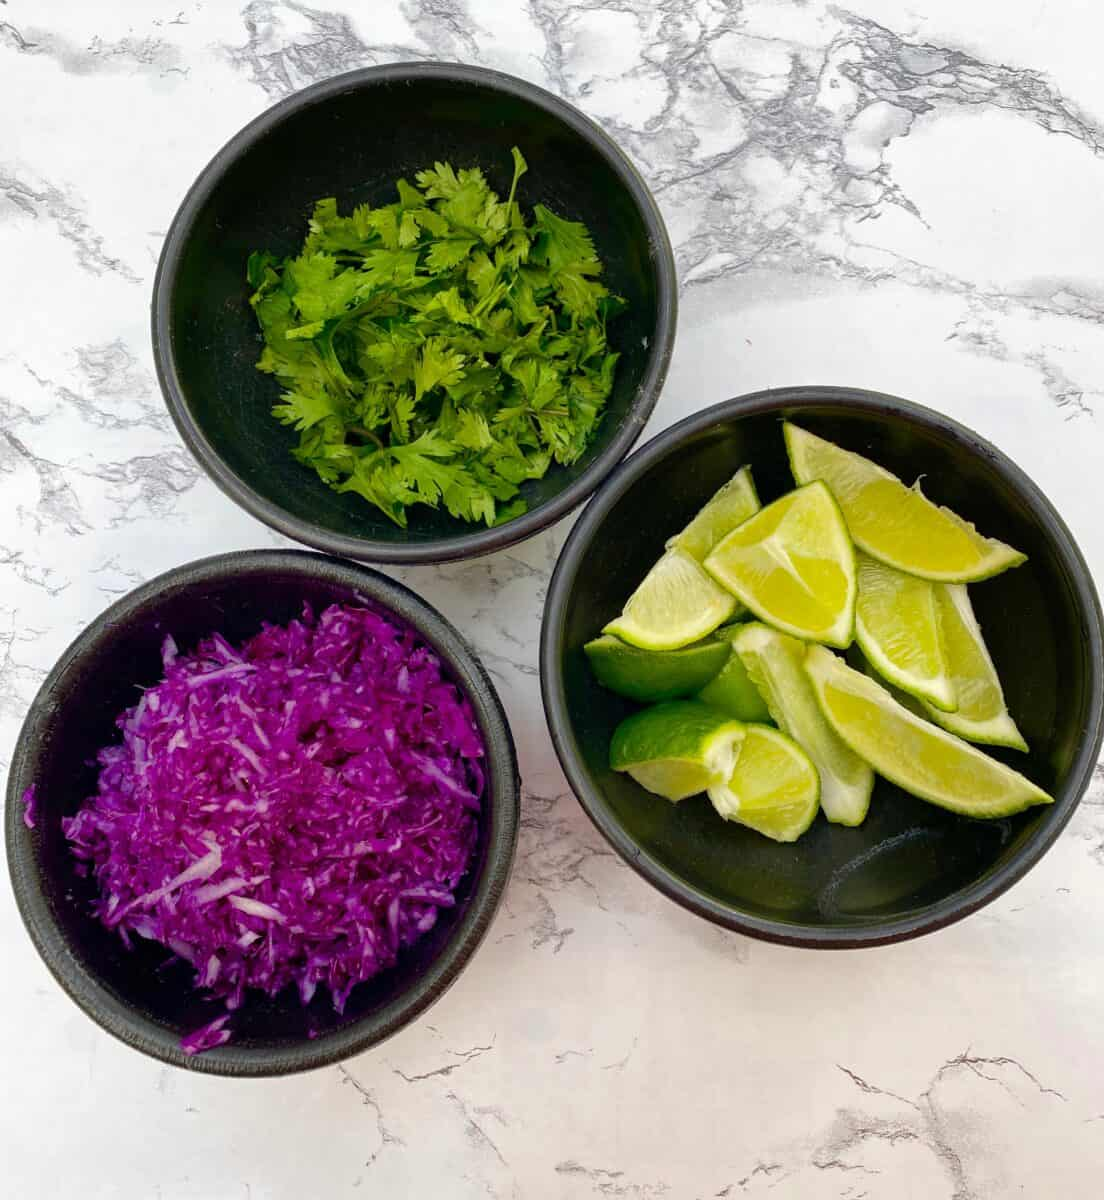 Red cabbage, limes and cilantro in small bowls on a counter.